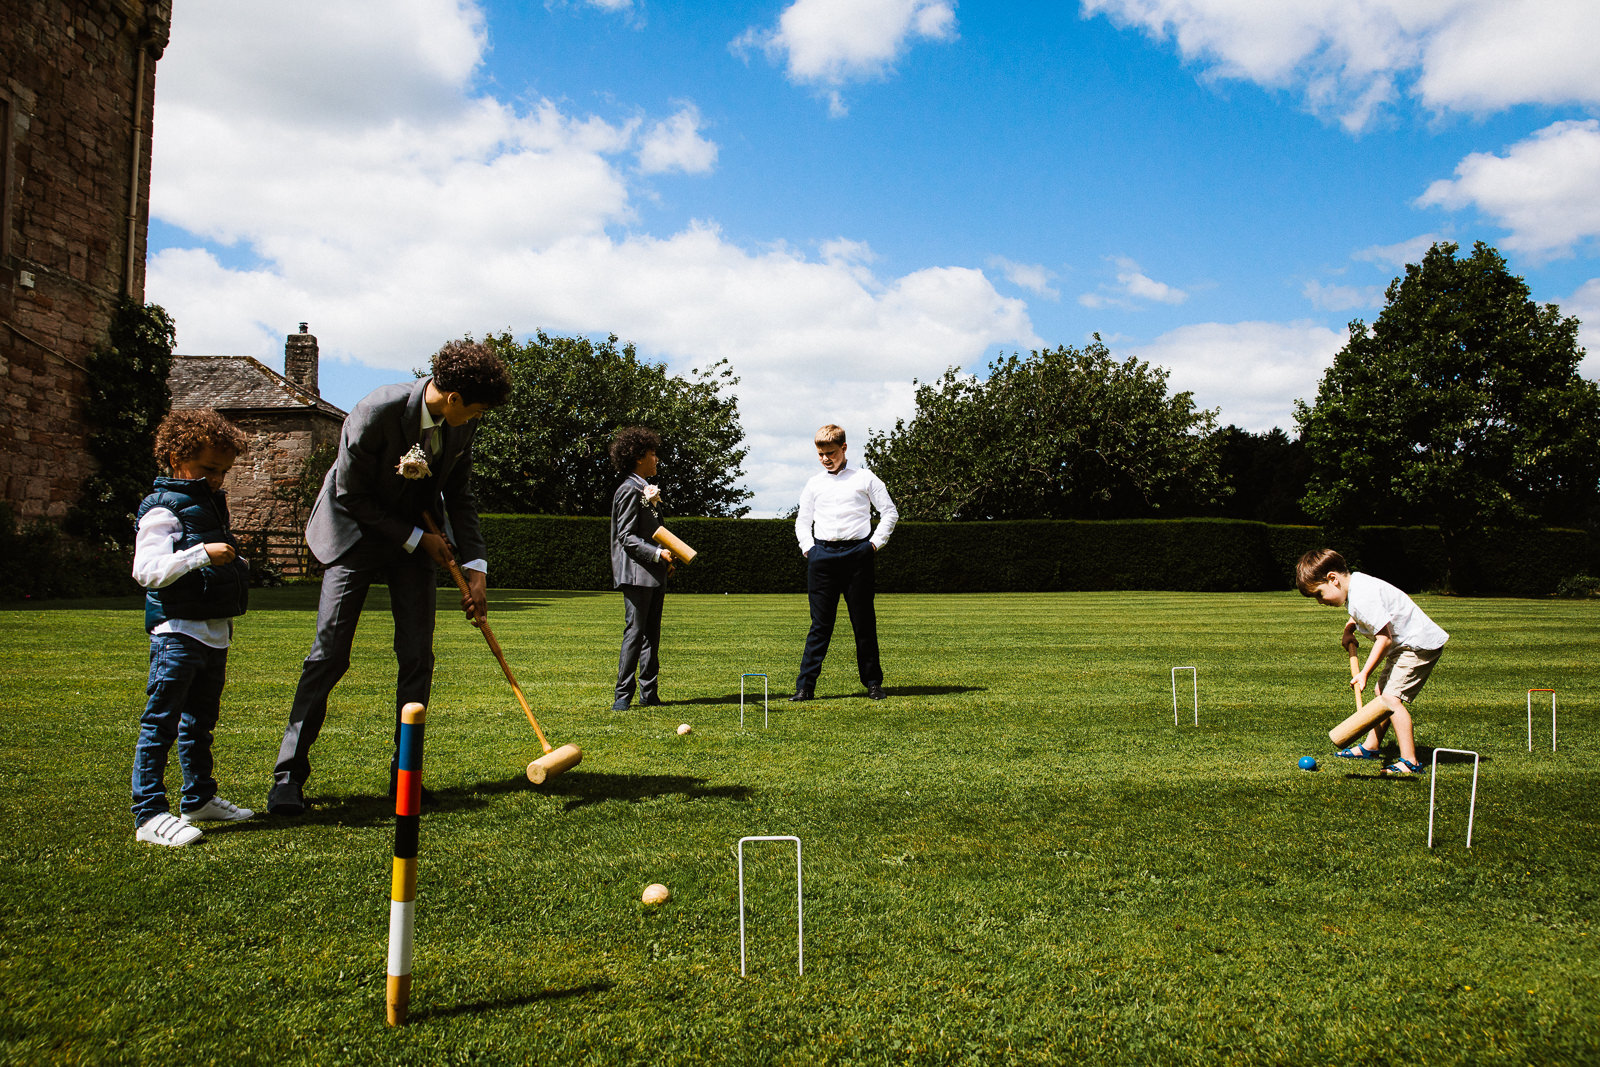 Lawn games at Askham Hall